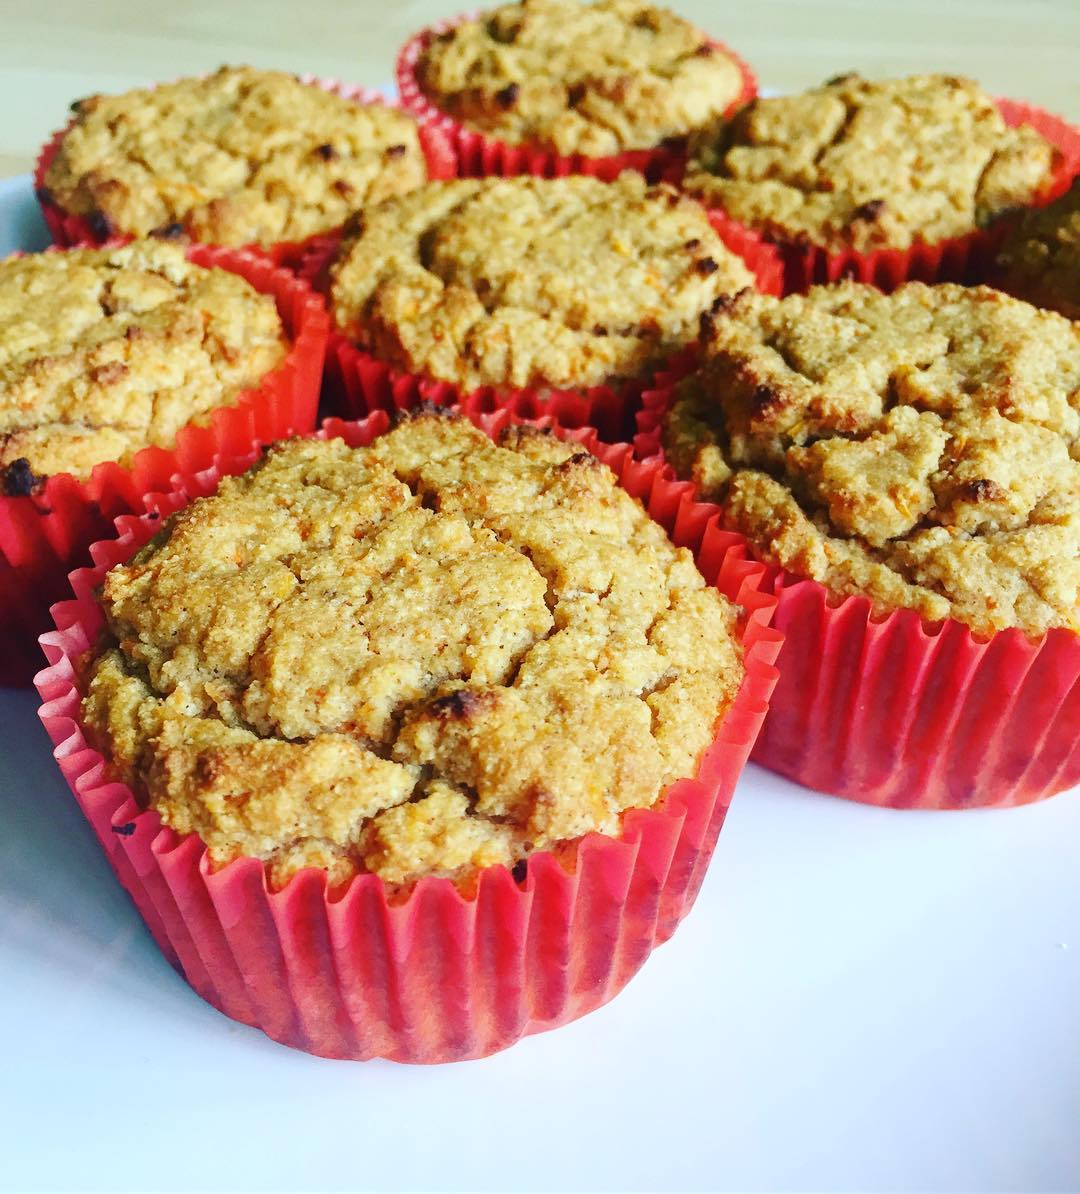 carrot cake protein muffins by @cleaneating_creations